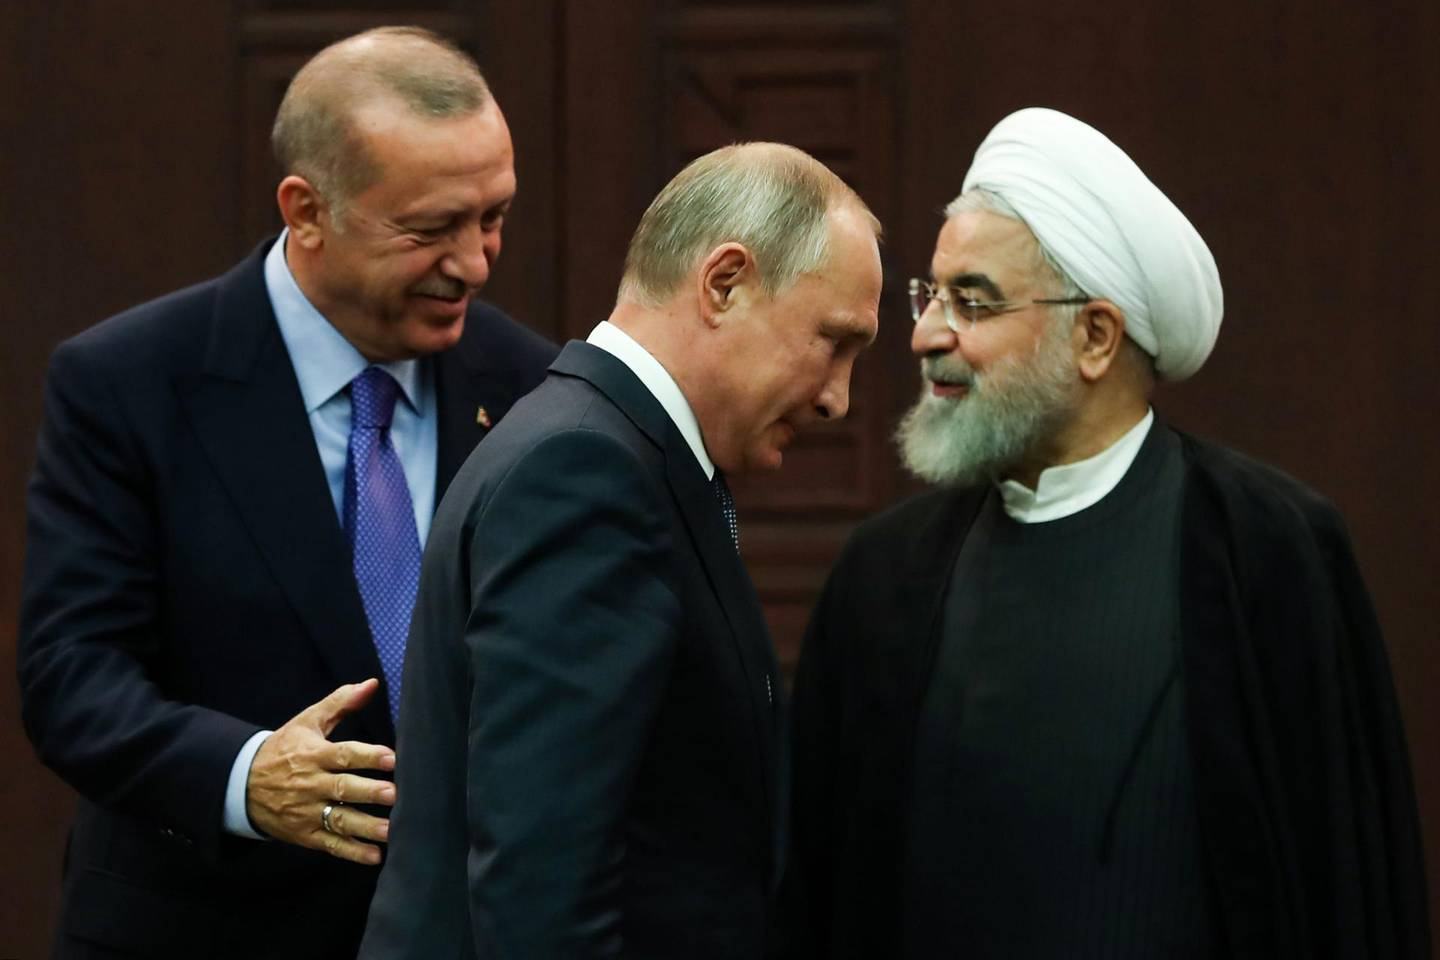 TOPSHOT - Turkish President Recep Tayyip Erdogan (L), Russian President Vladimir Putin (C) and Iranian President Hassan Rouhani (R) leave after a press conference following a trilateral meeting on Syria, in Ankara on September 16, 2019.  / AFP / Adem ALTAN